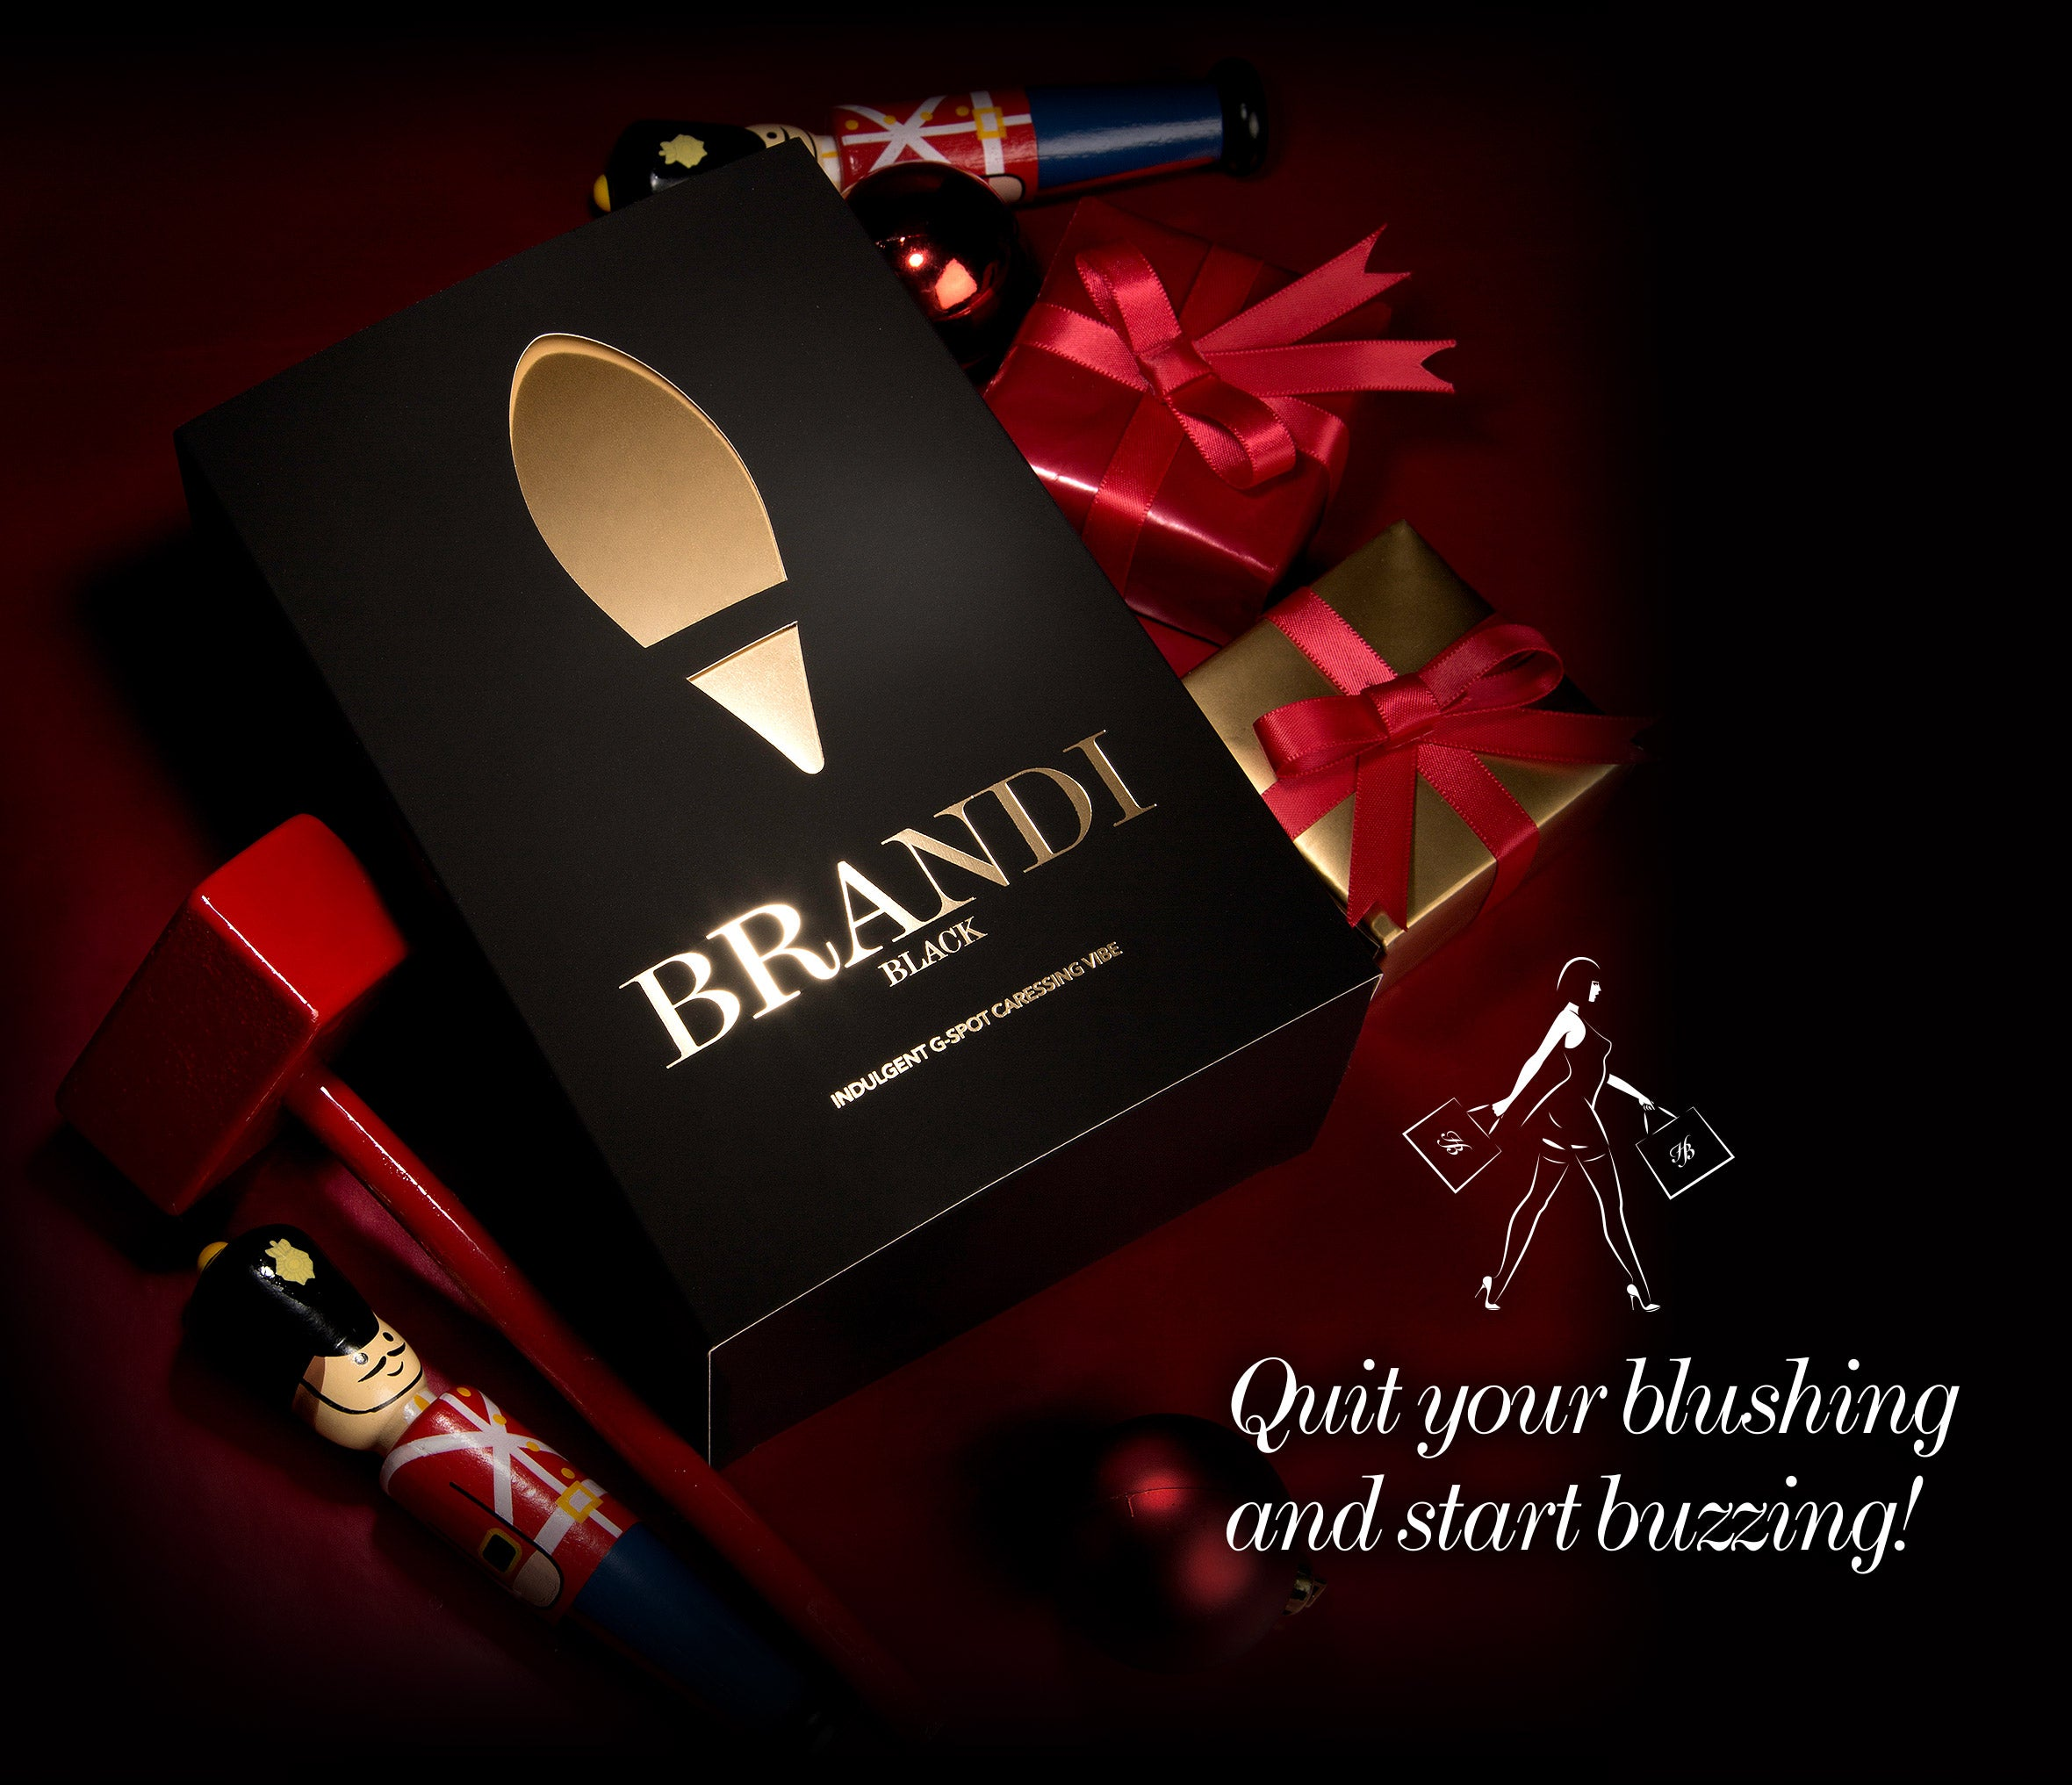 Brandi Vibrating Egg Packaging Image - Womens Sex Toys | Honey Birdette Australia